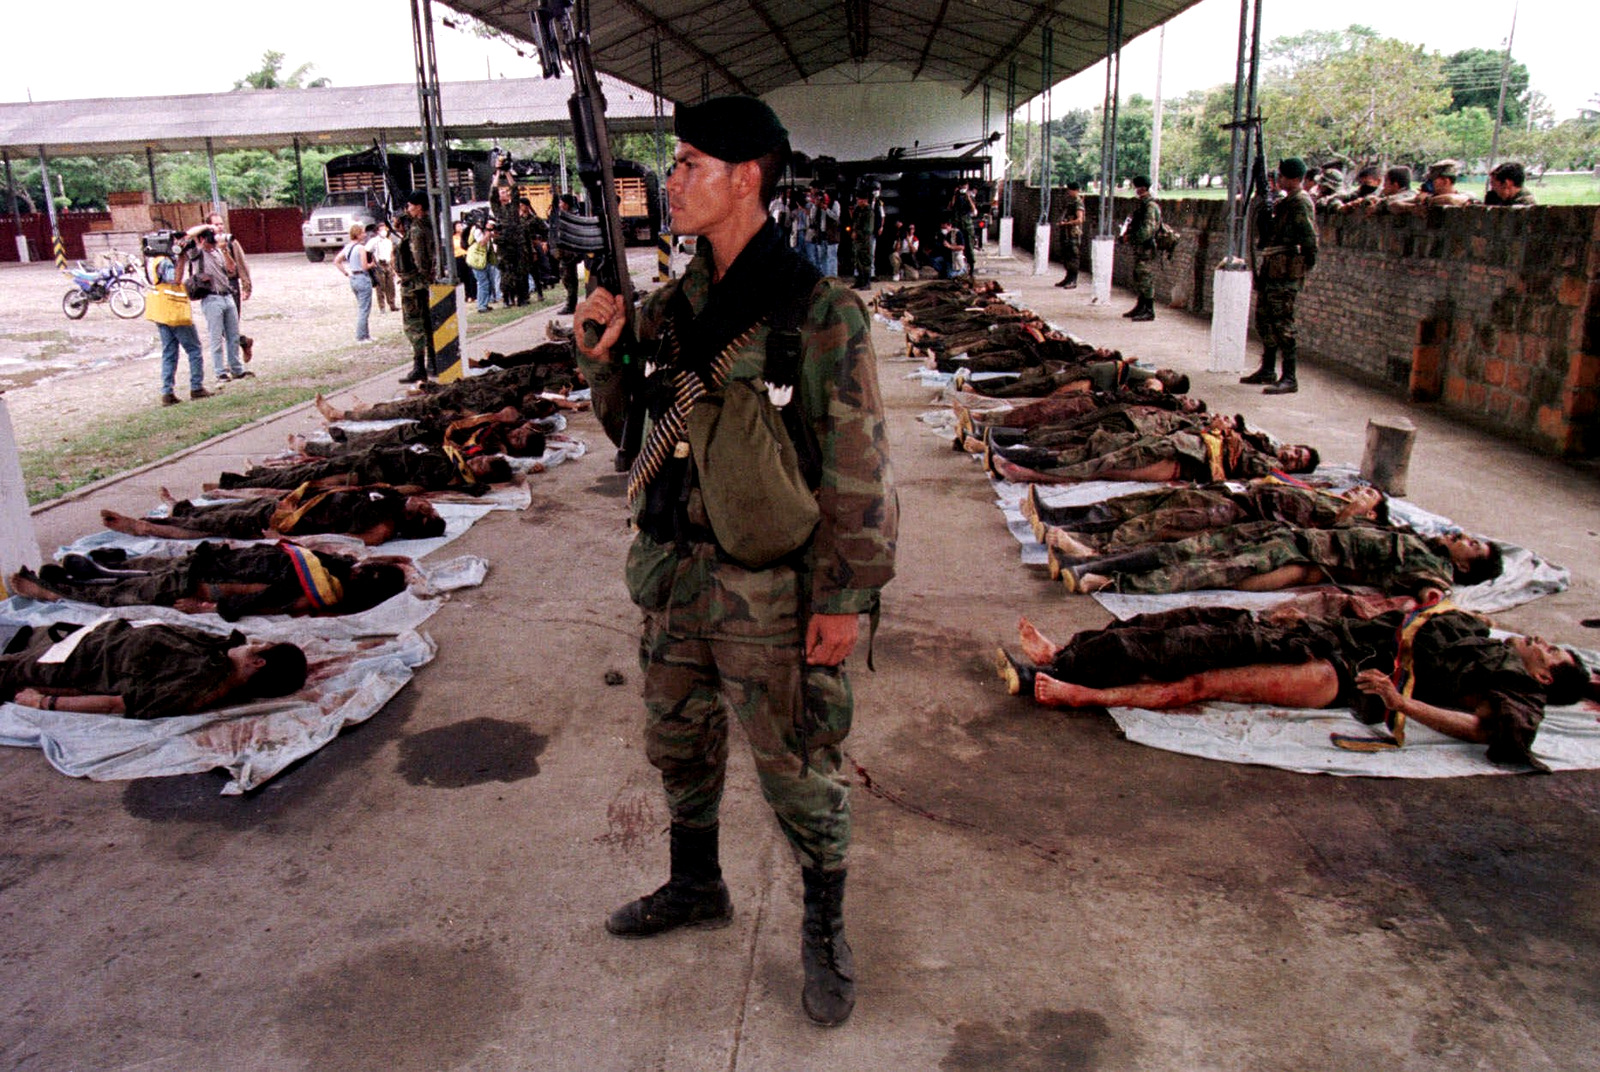 Colombian soldiers display the bodies of 30 Revolutionary Armed Forces of Colombia, or FARC, rebels to the prress in Granada, about 180 kilometers (112 miles) outside of Bogota, Colombia, Monday, July 12, 1999. (AP/Scott Dalton)